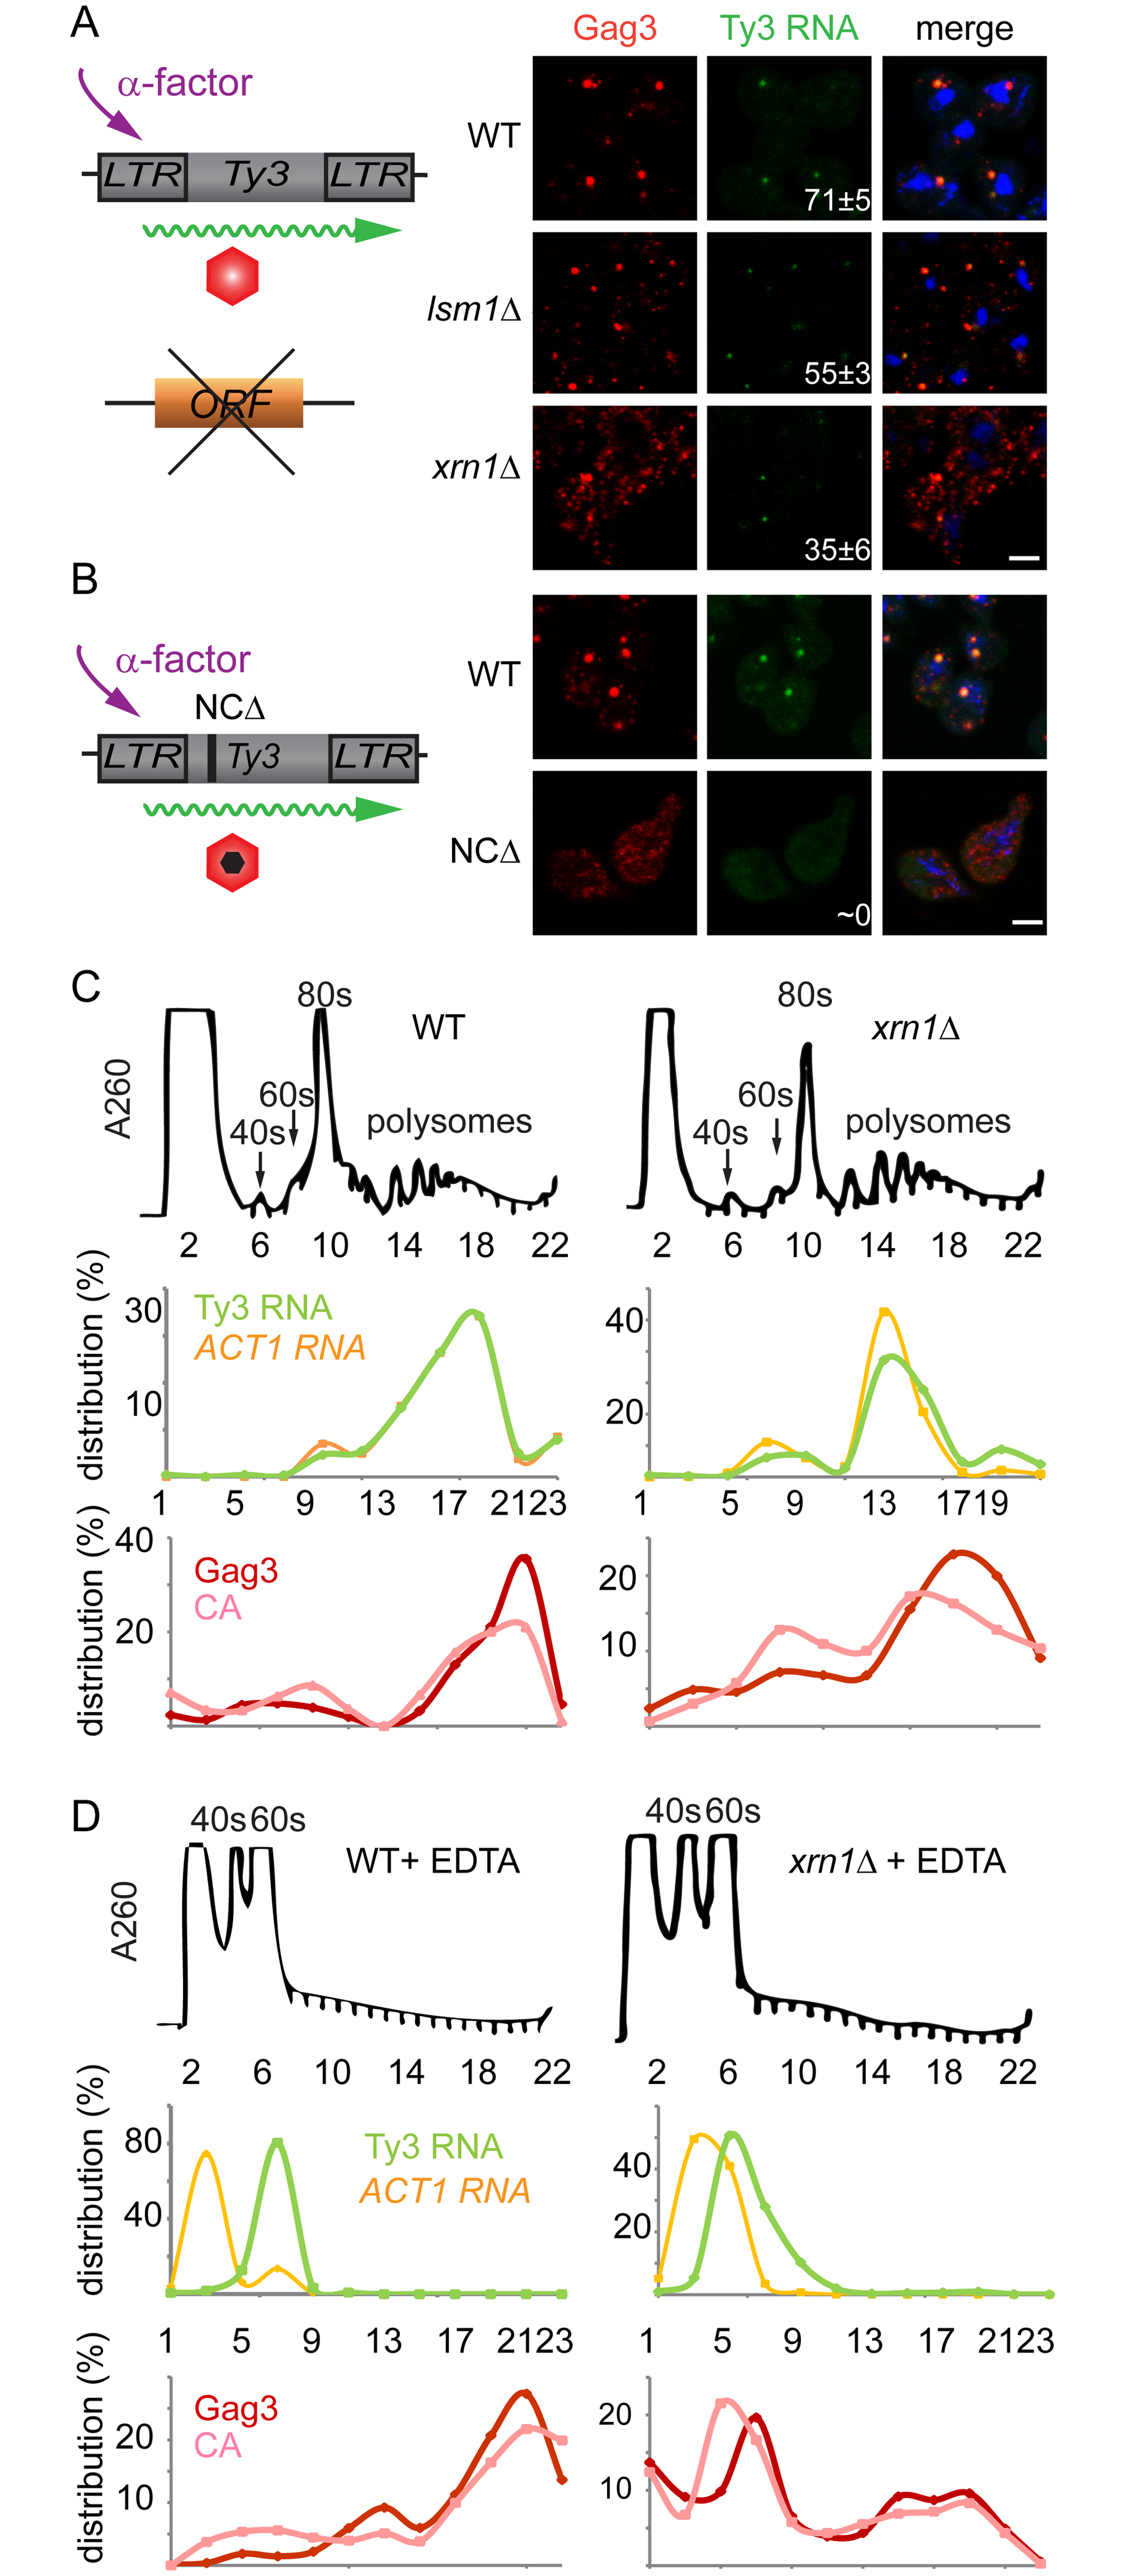 Xrn1 and Lsm1 are required for Gag3 foci formation in mating cells.